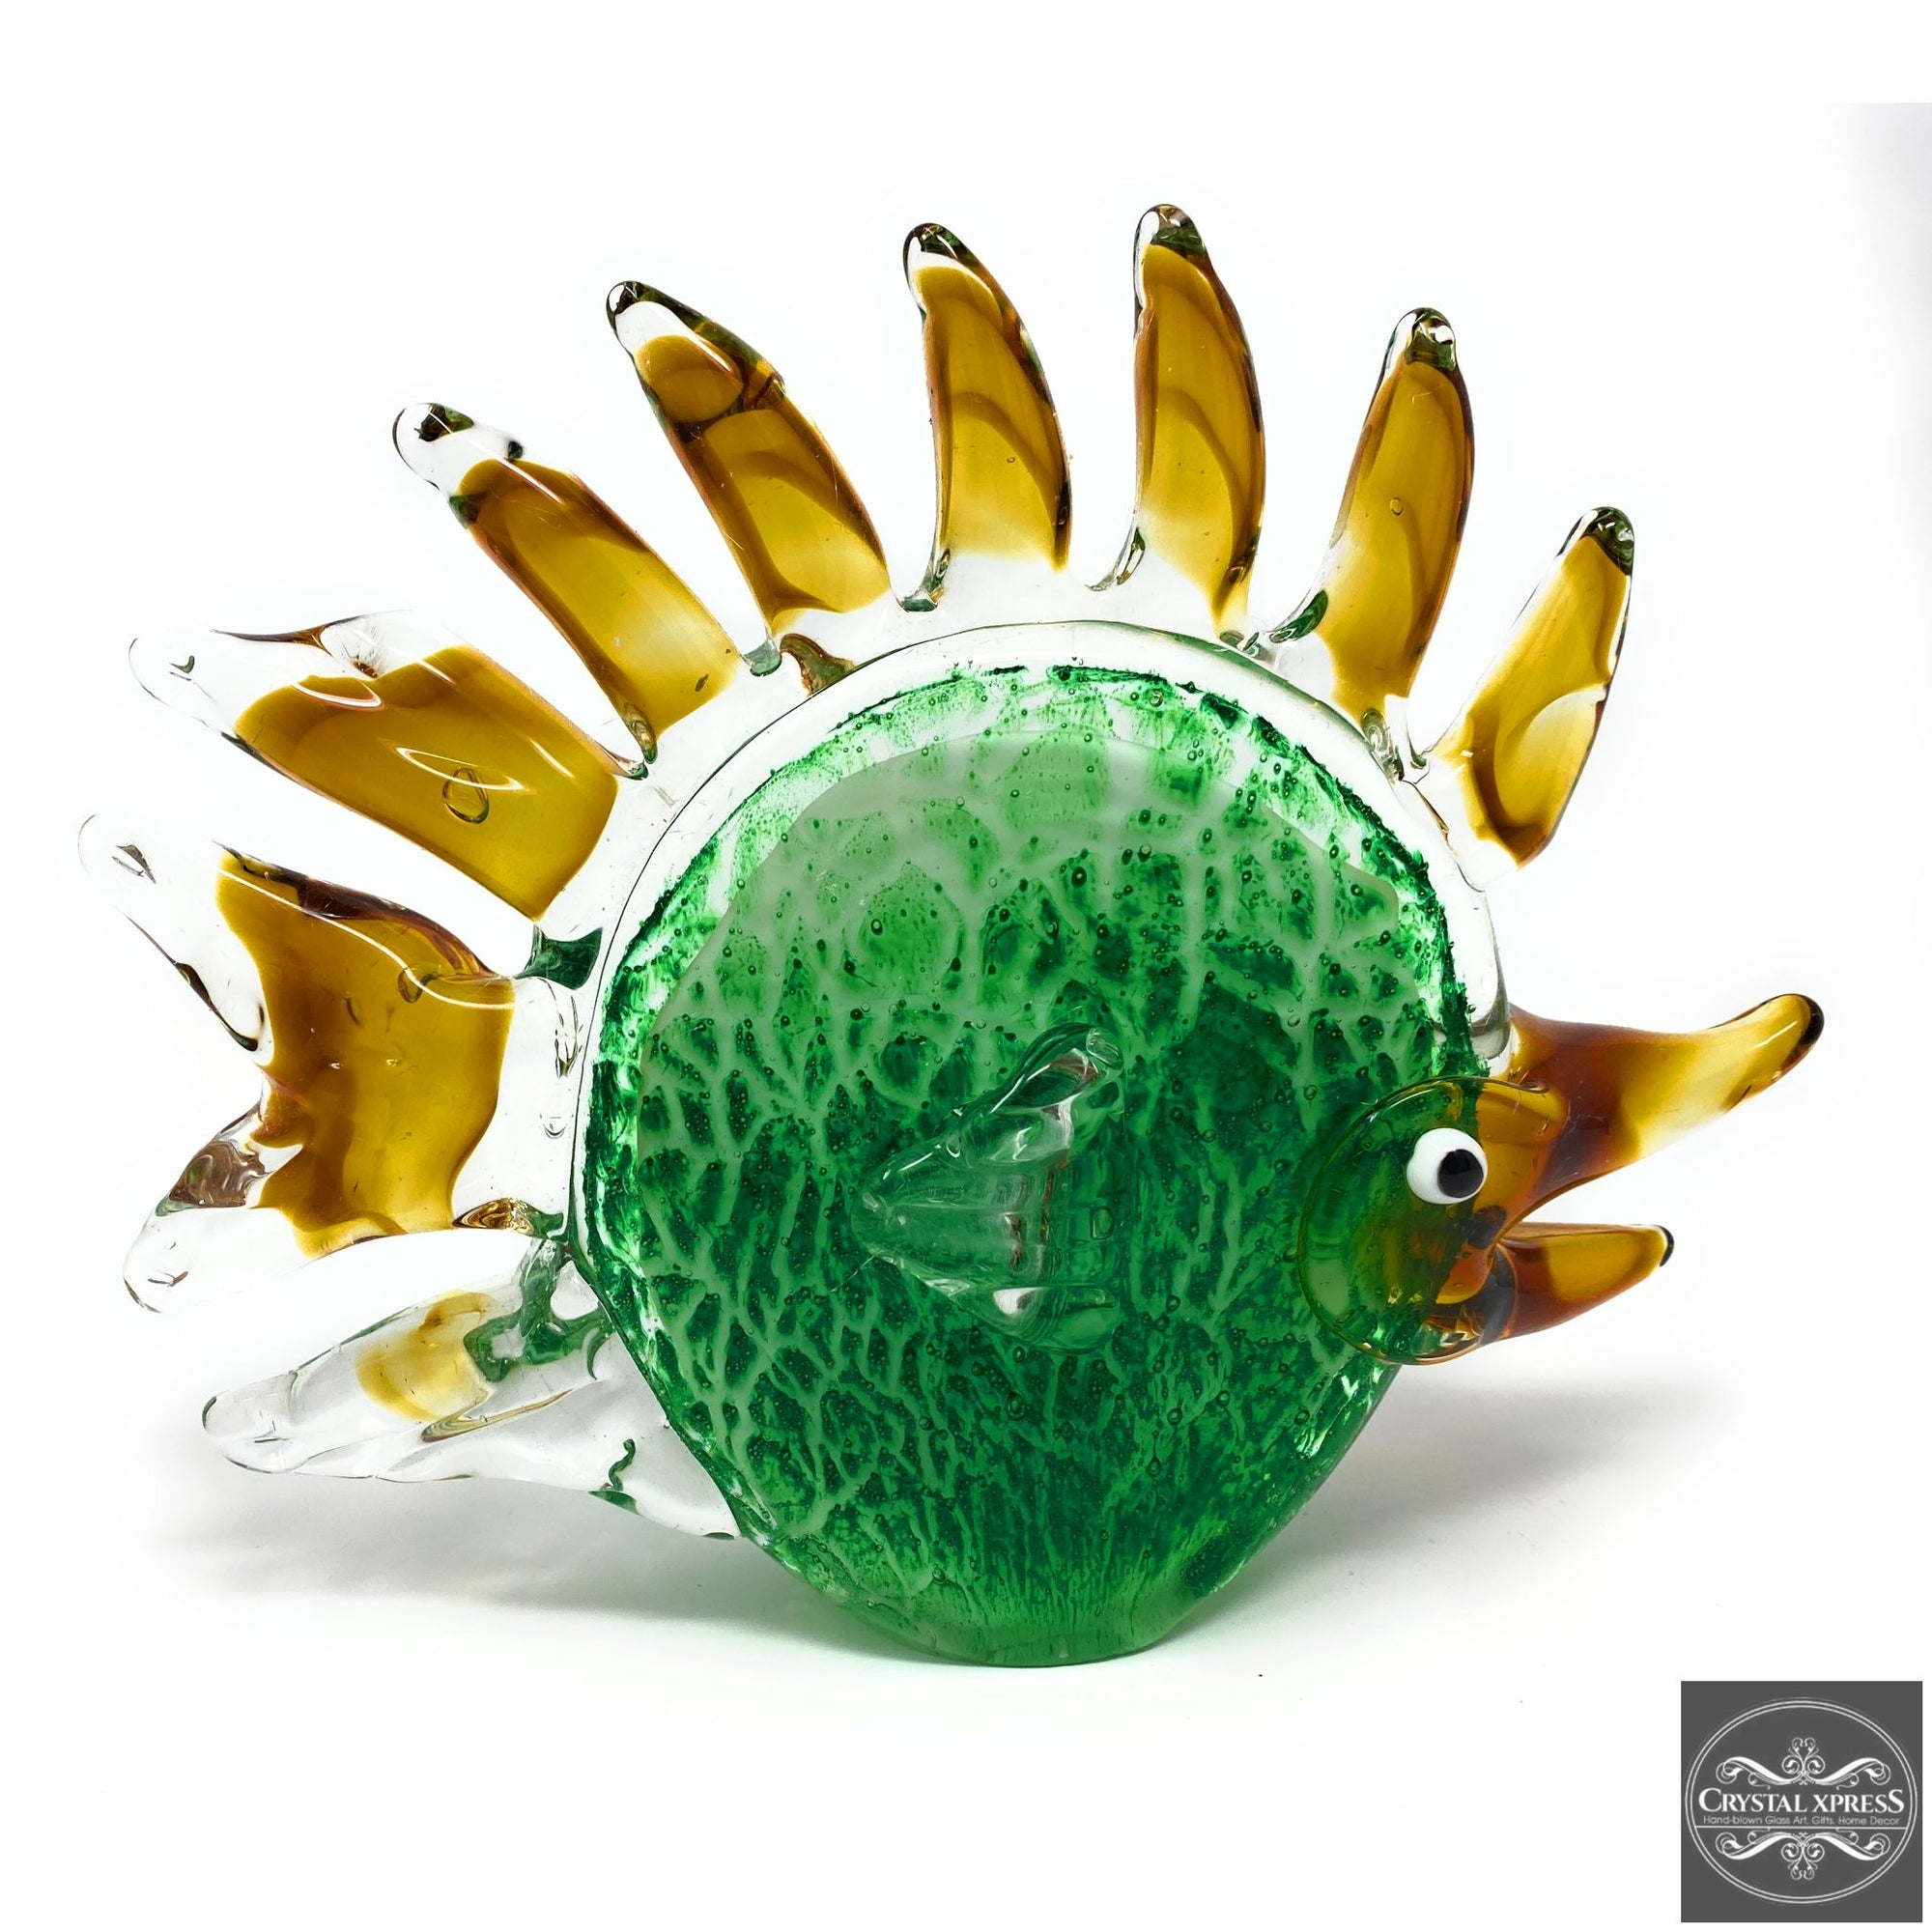 "New 9"" Crafted Hand Blown Glass Green and Yellow Fins Fish Sculpture Figurine Art DecorCrystal Xpress"